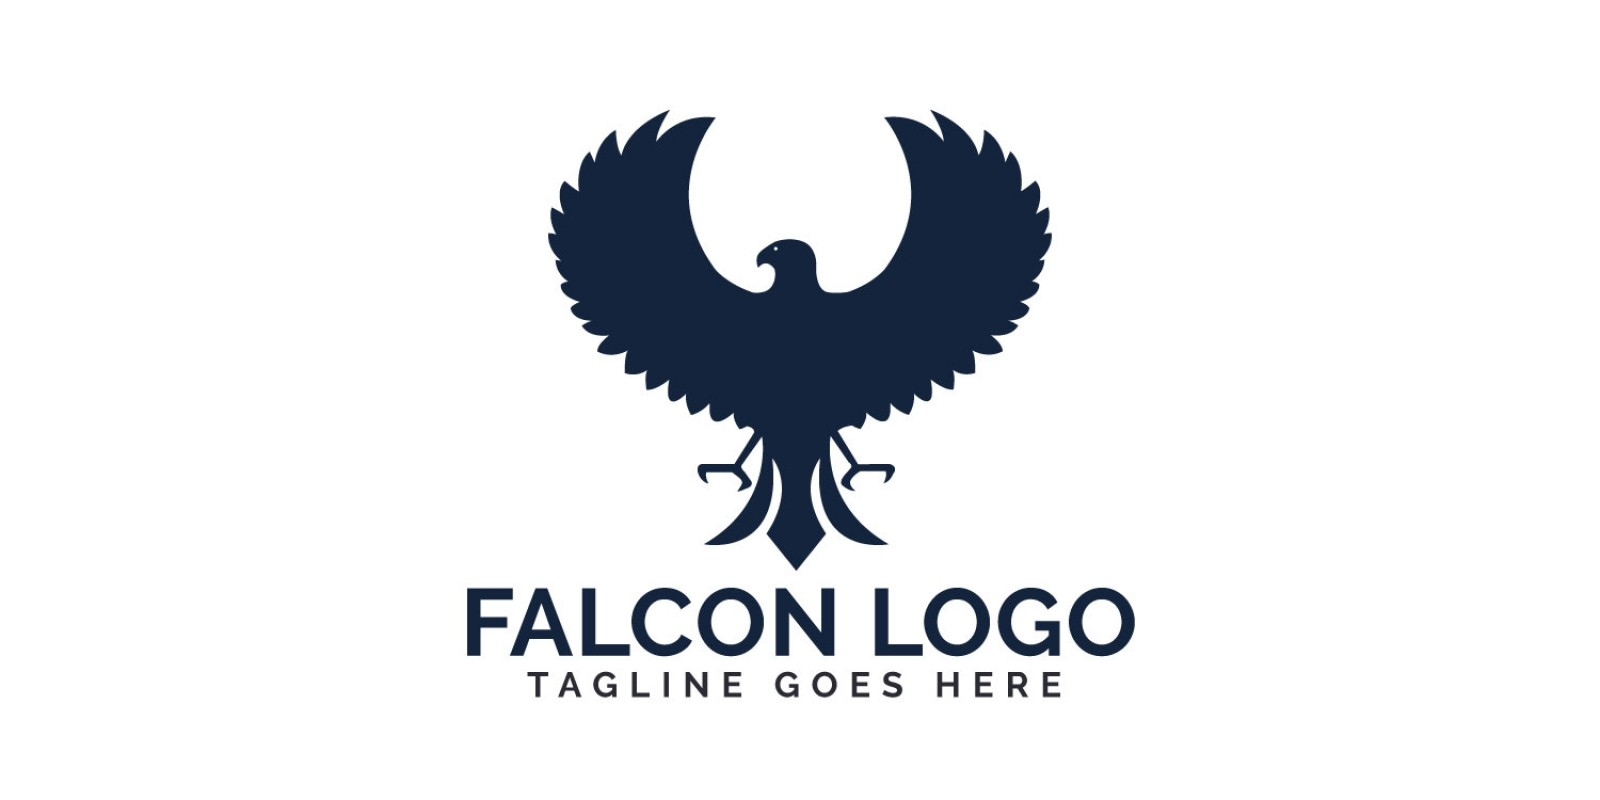 Falcon Vector Logo Design